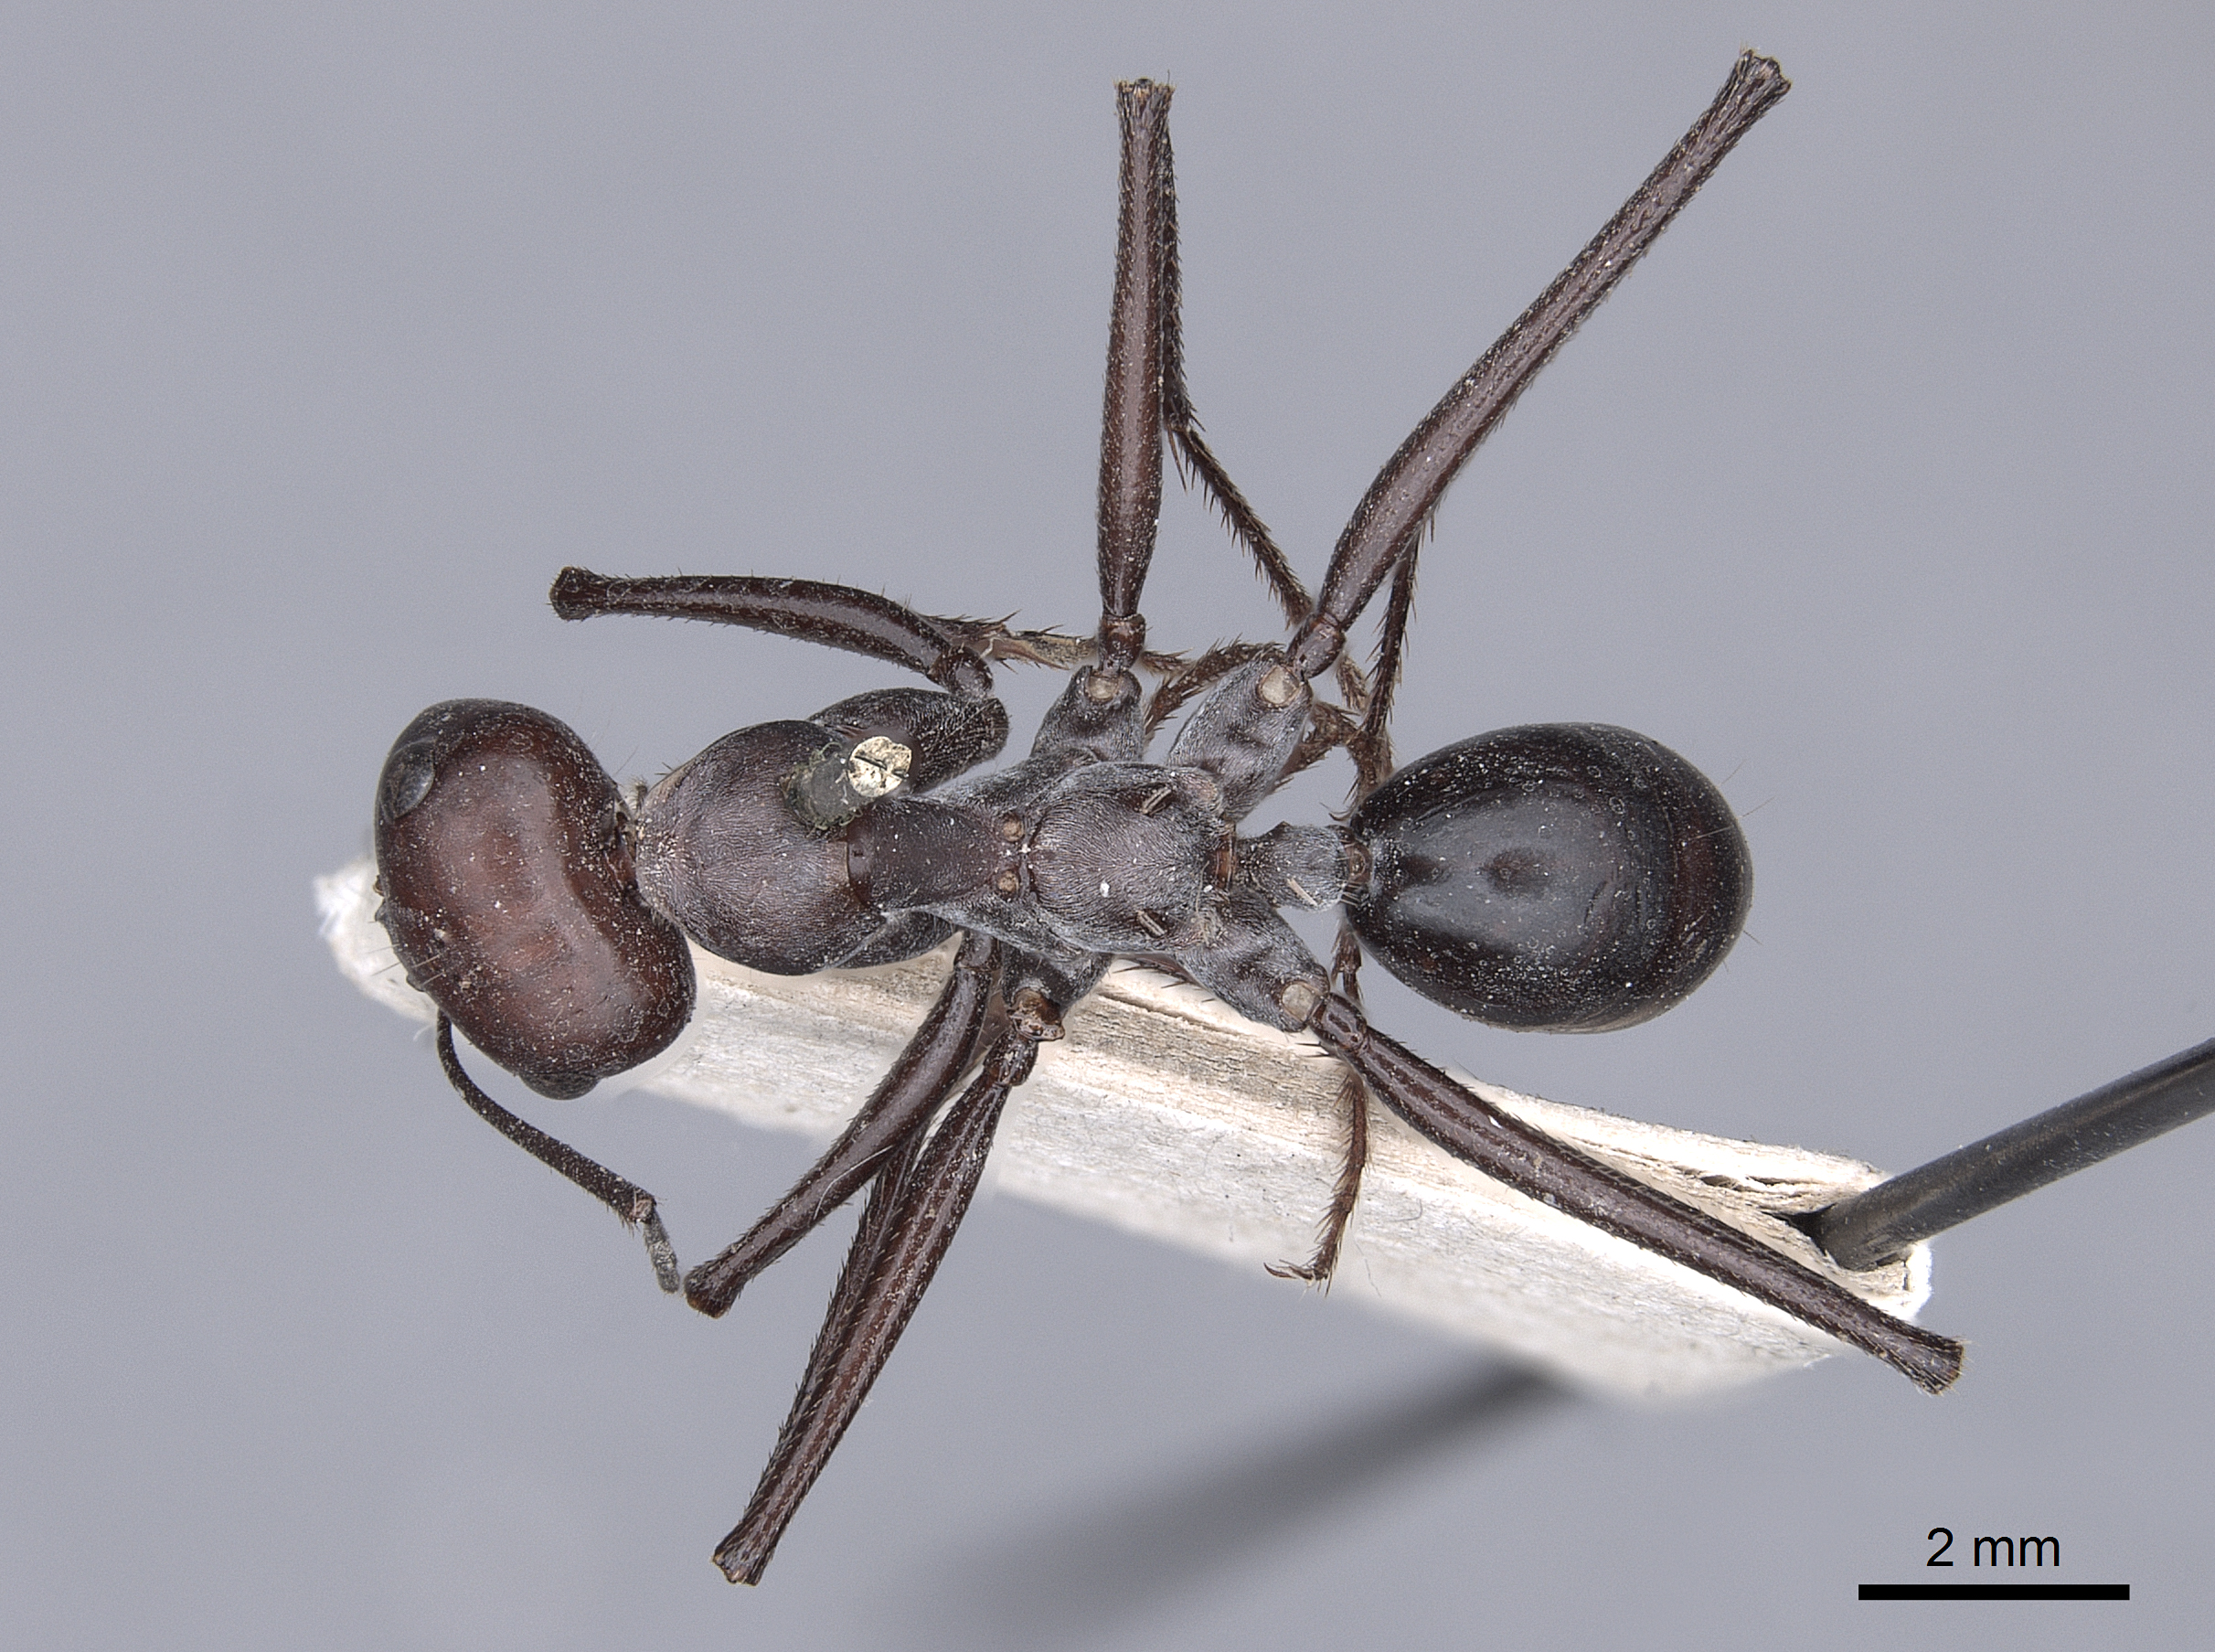 Image of Cataglyphis bicolor